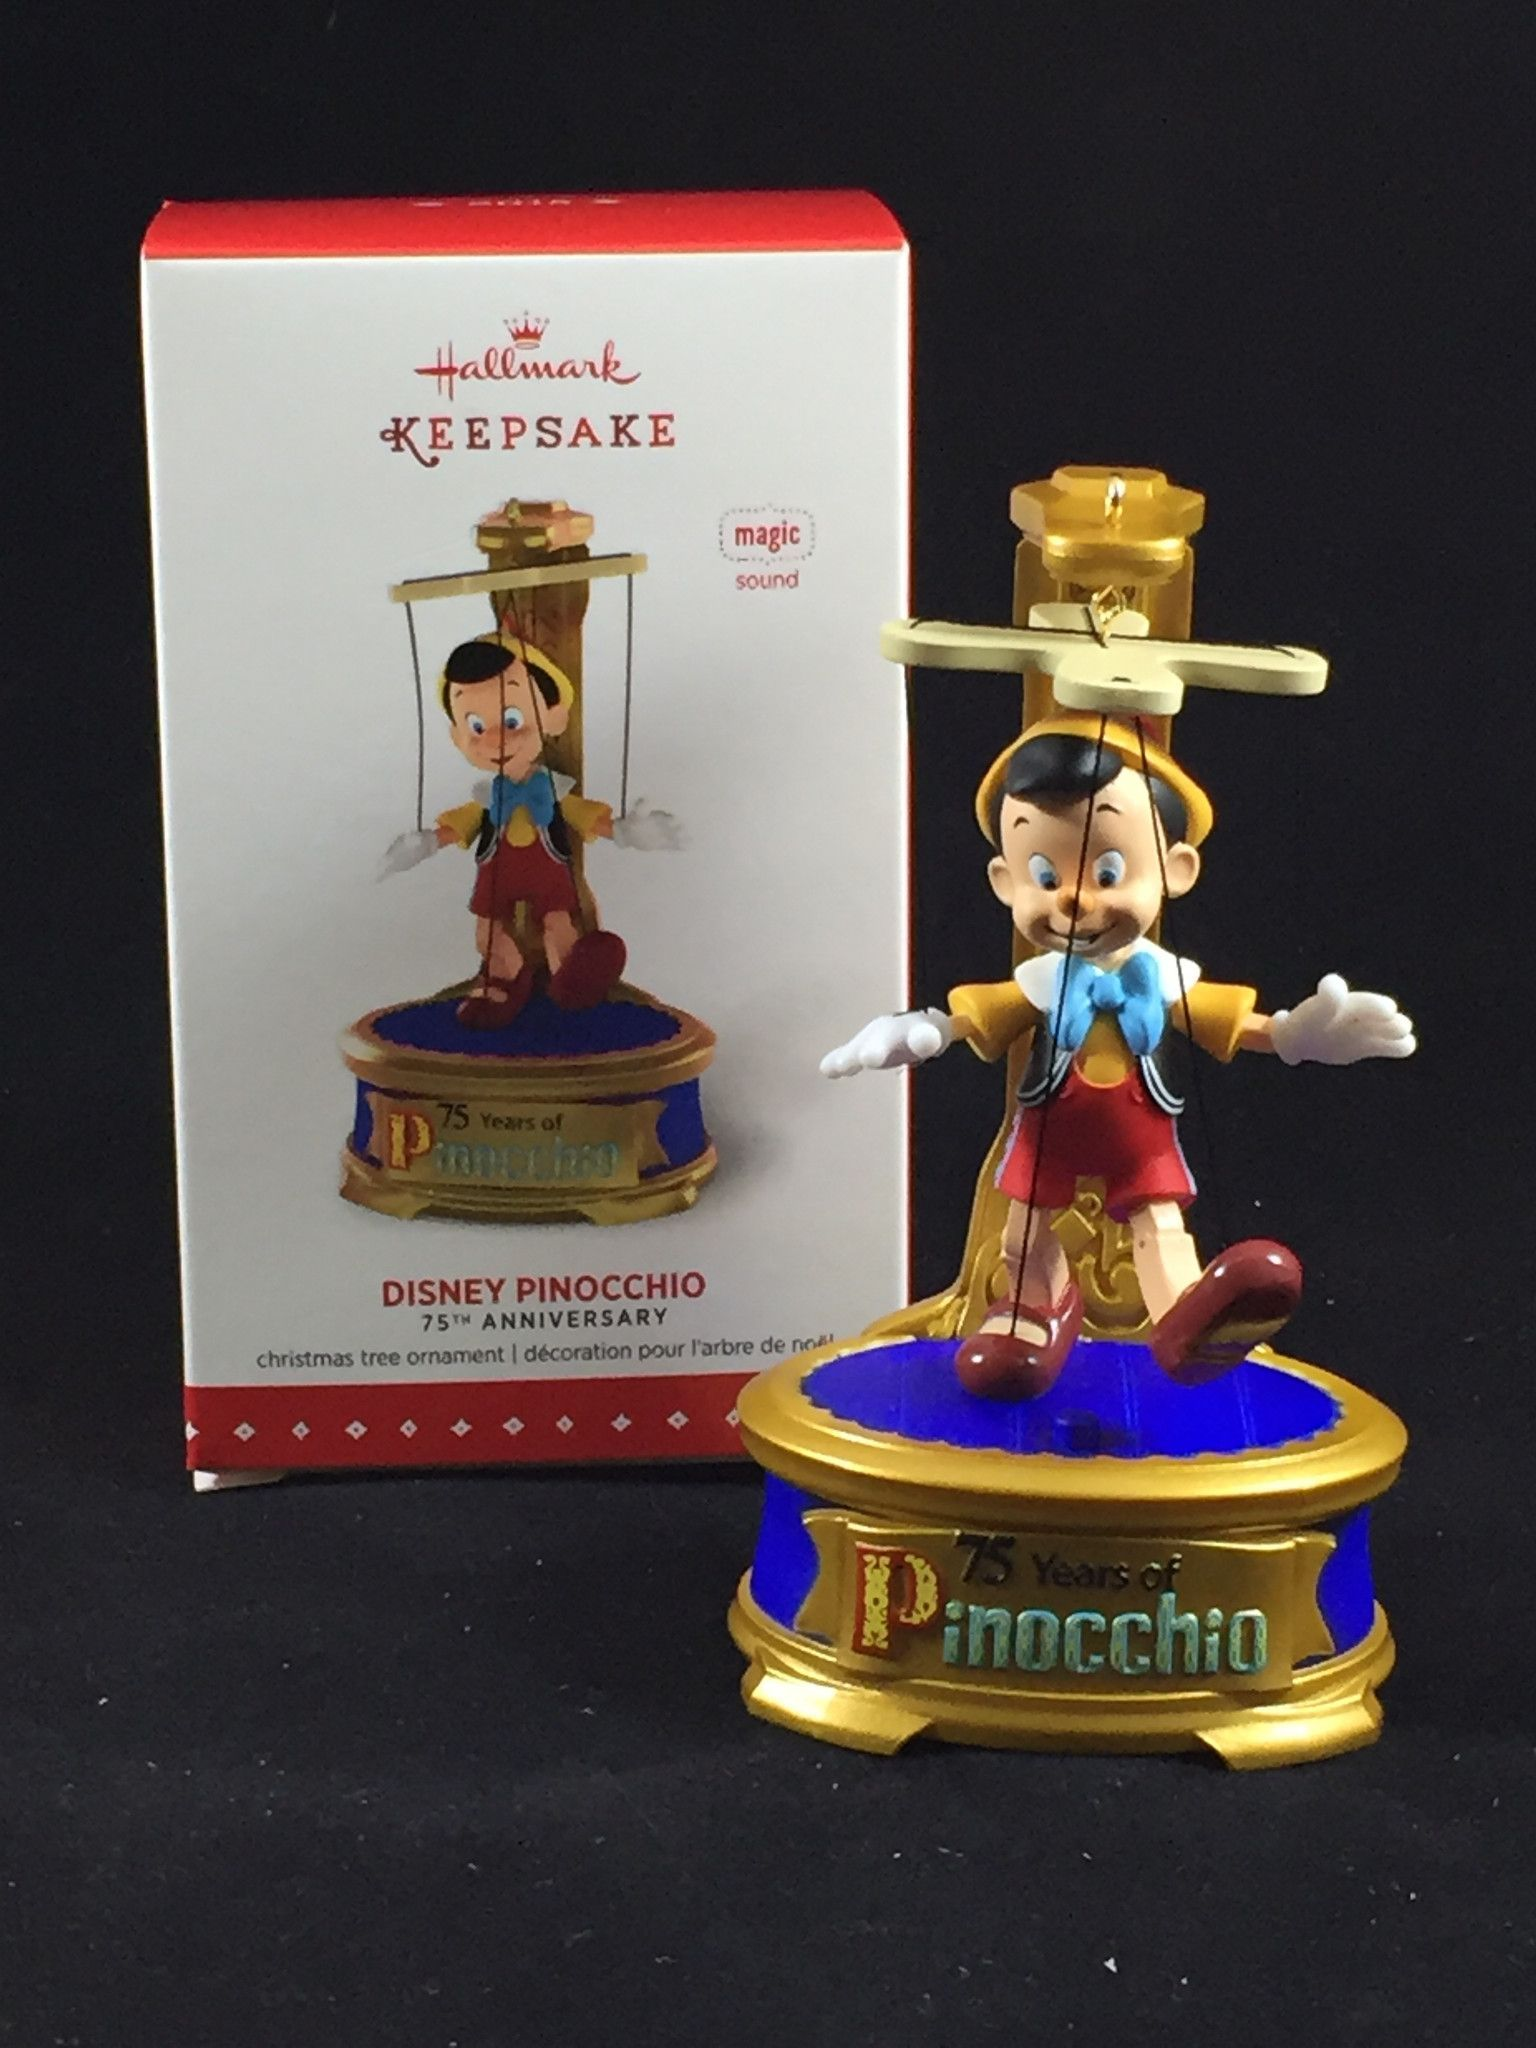 Pinocchio 75th Anniversary Hallmark Ornament | Pinocchio, Ornament ...